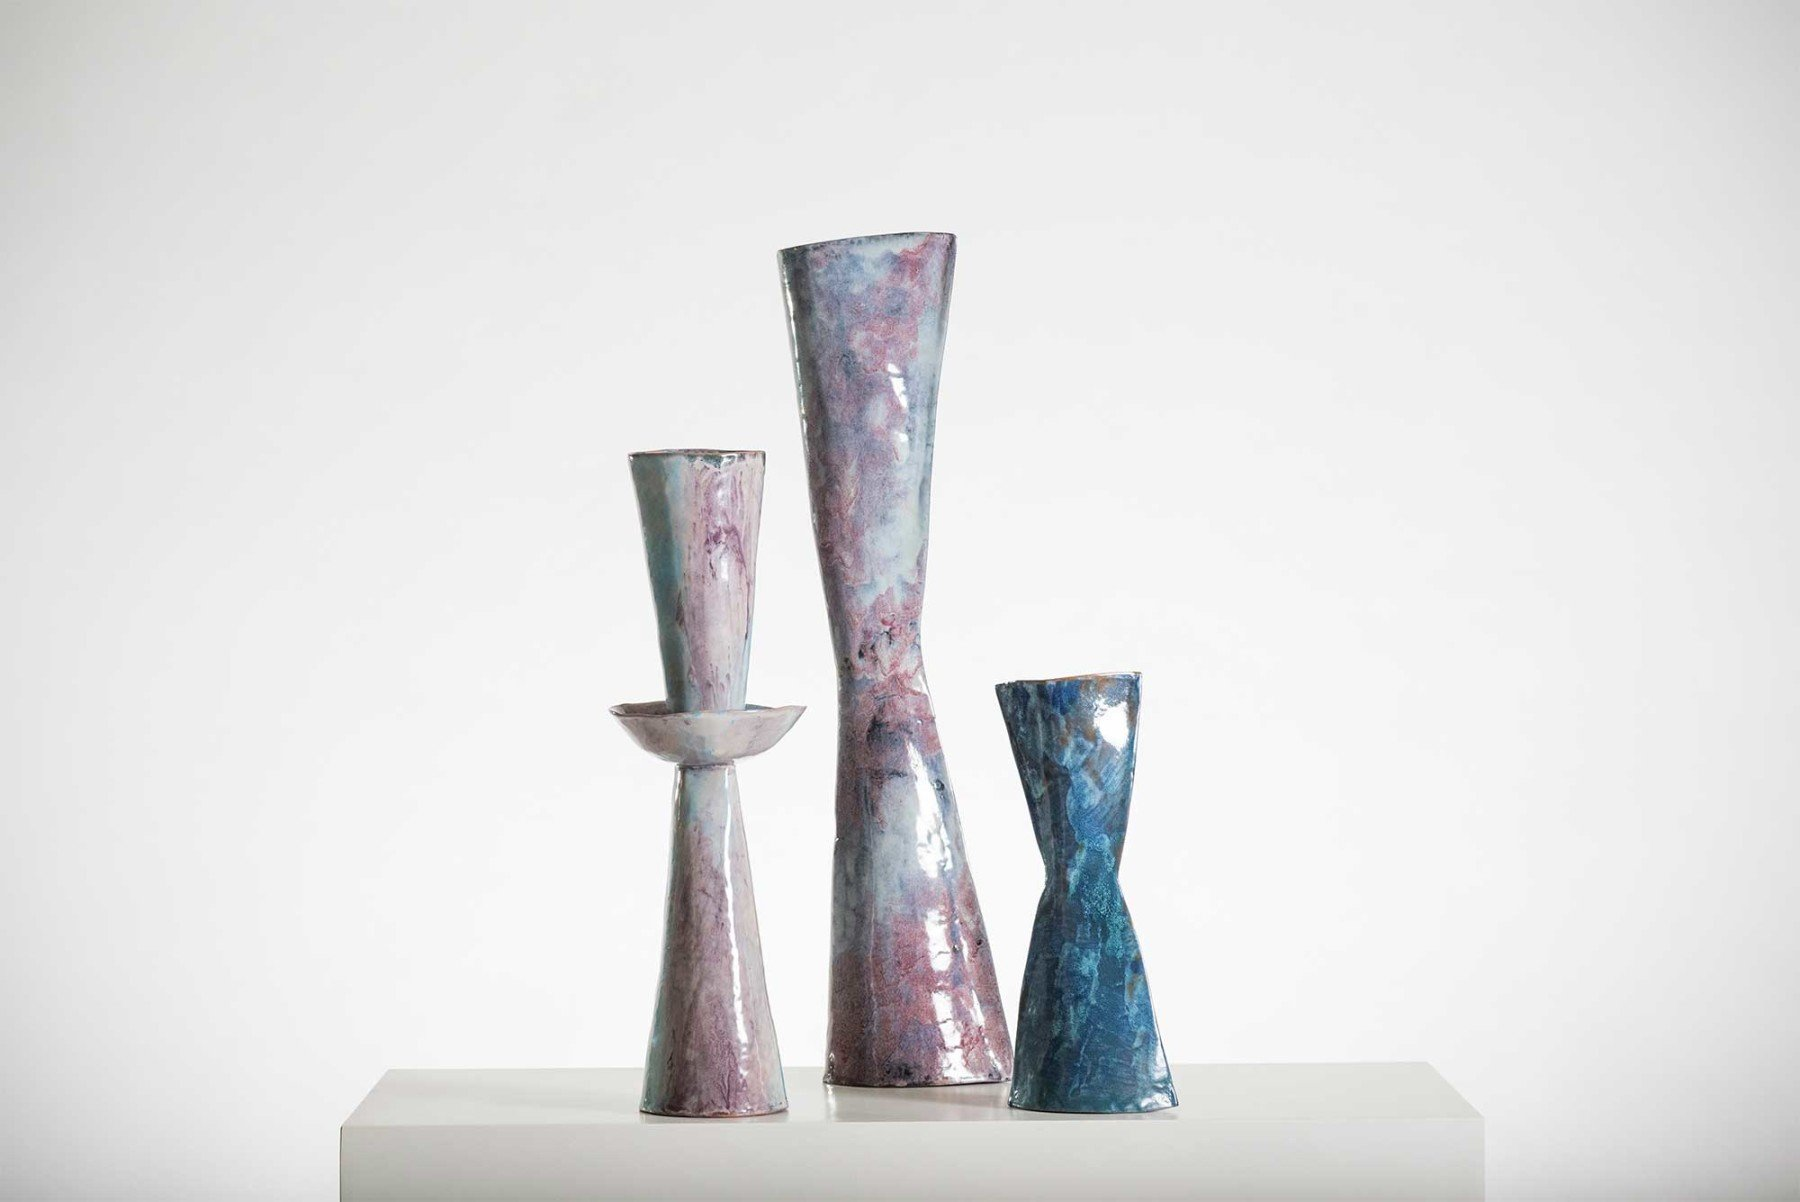 Picture of Fausto Melotti vase collection